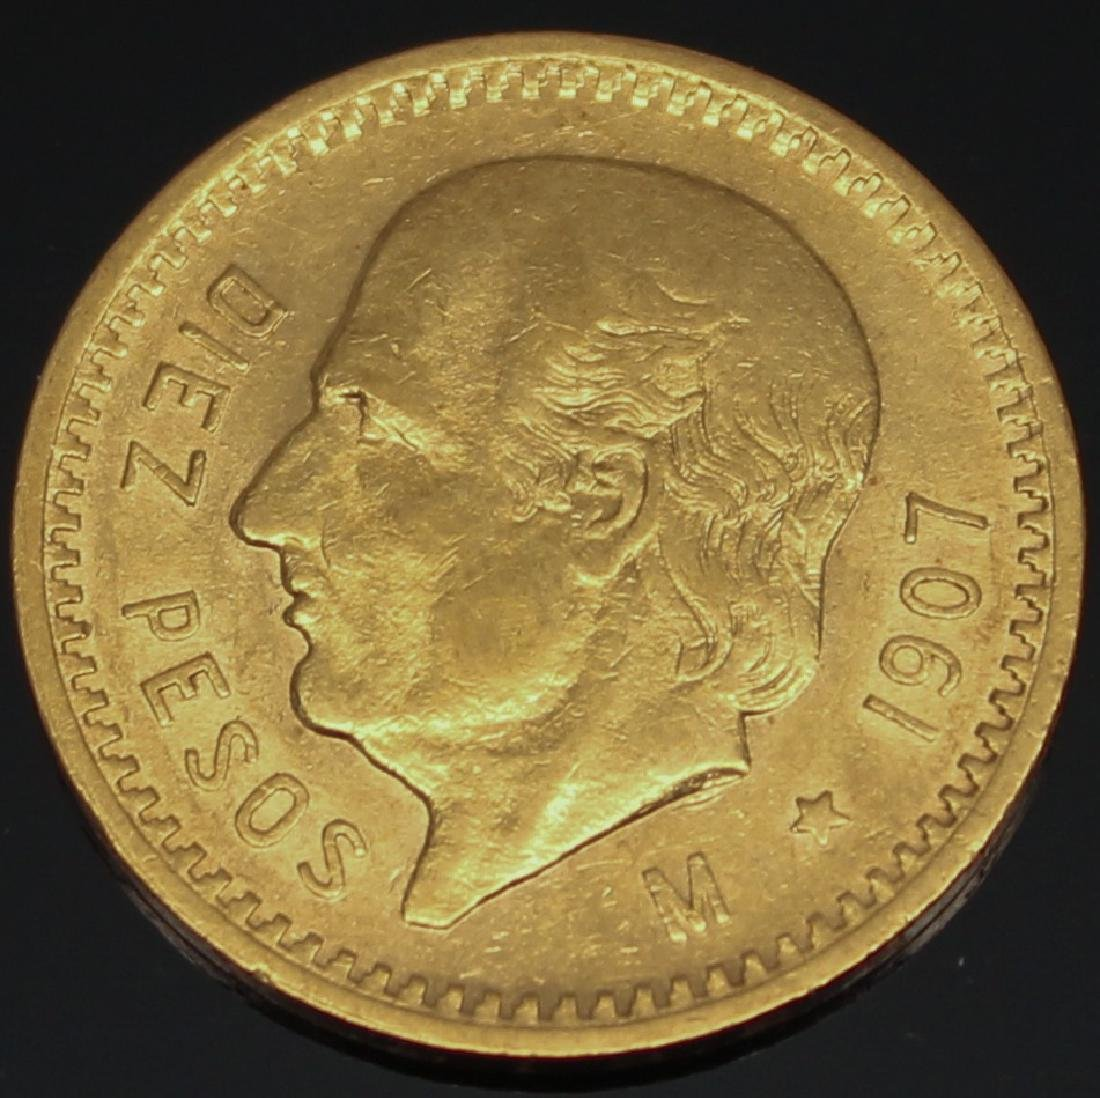 10 PESO MEXICAN 1907 M GOLD COIN